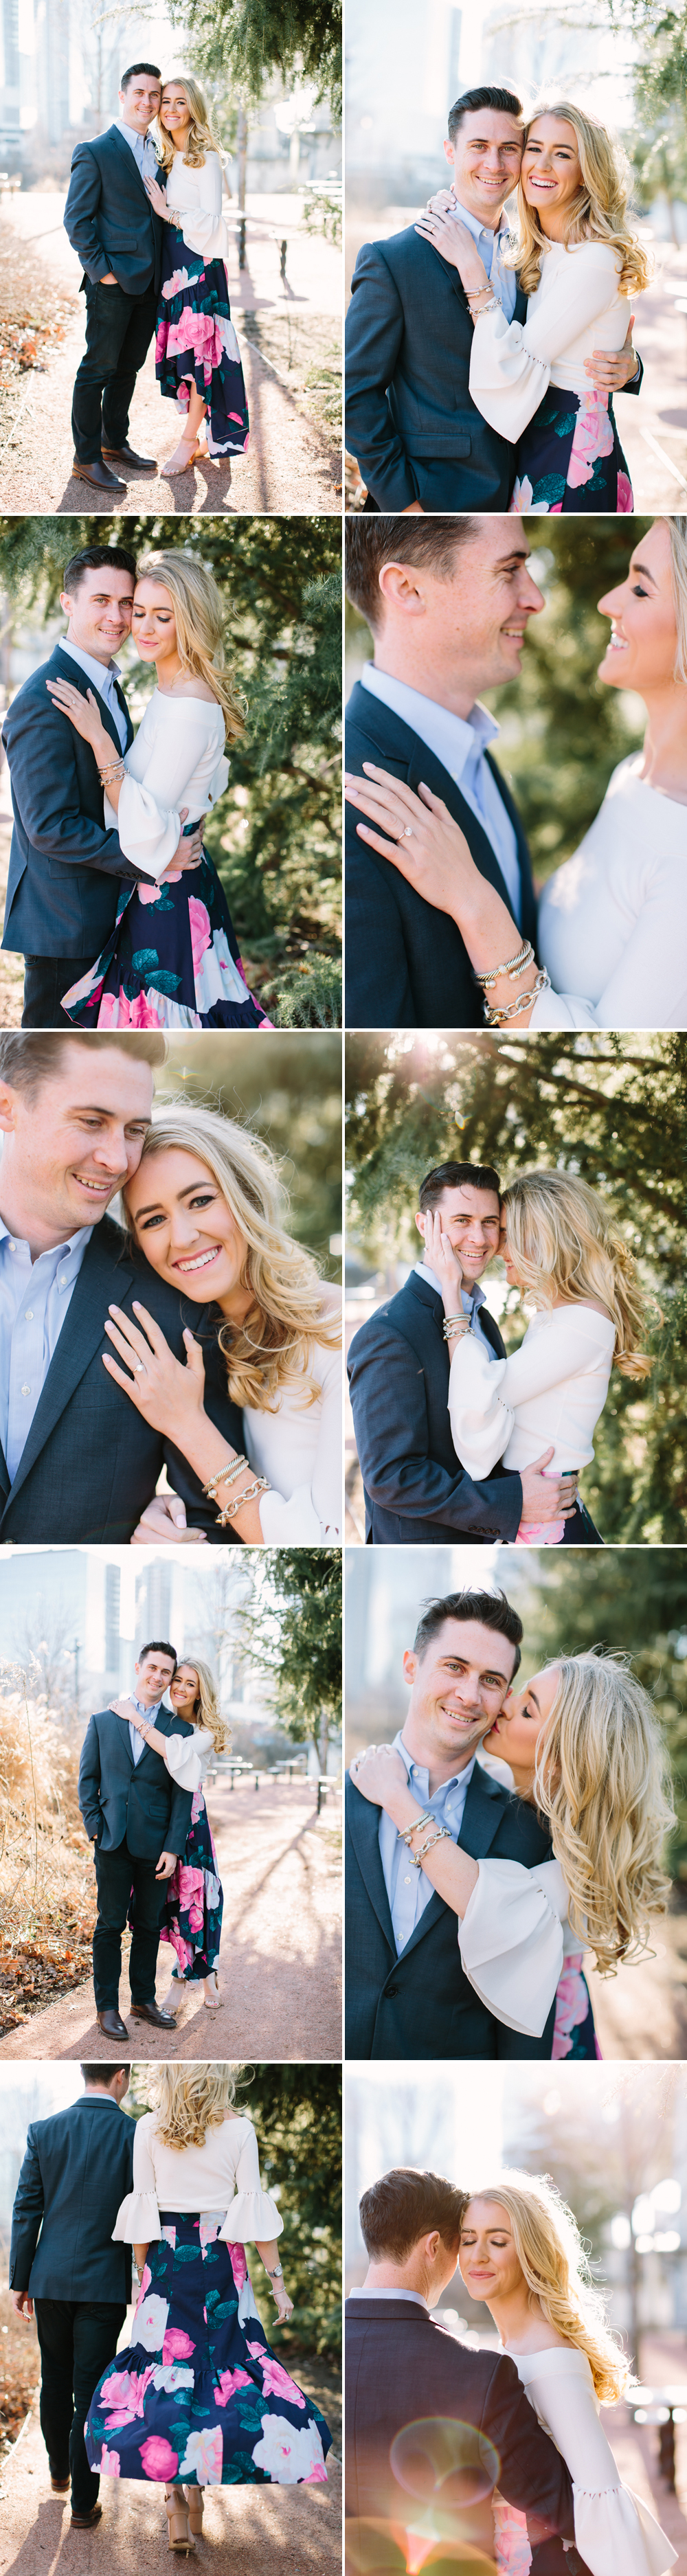 Nashville_Engagement_Photographer.jpg